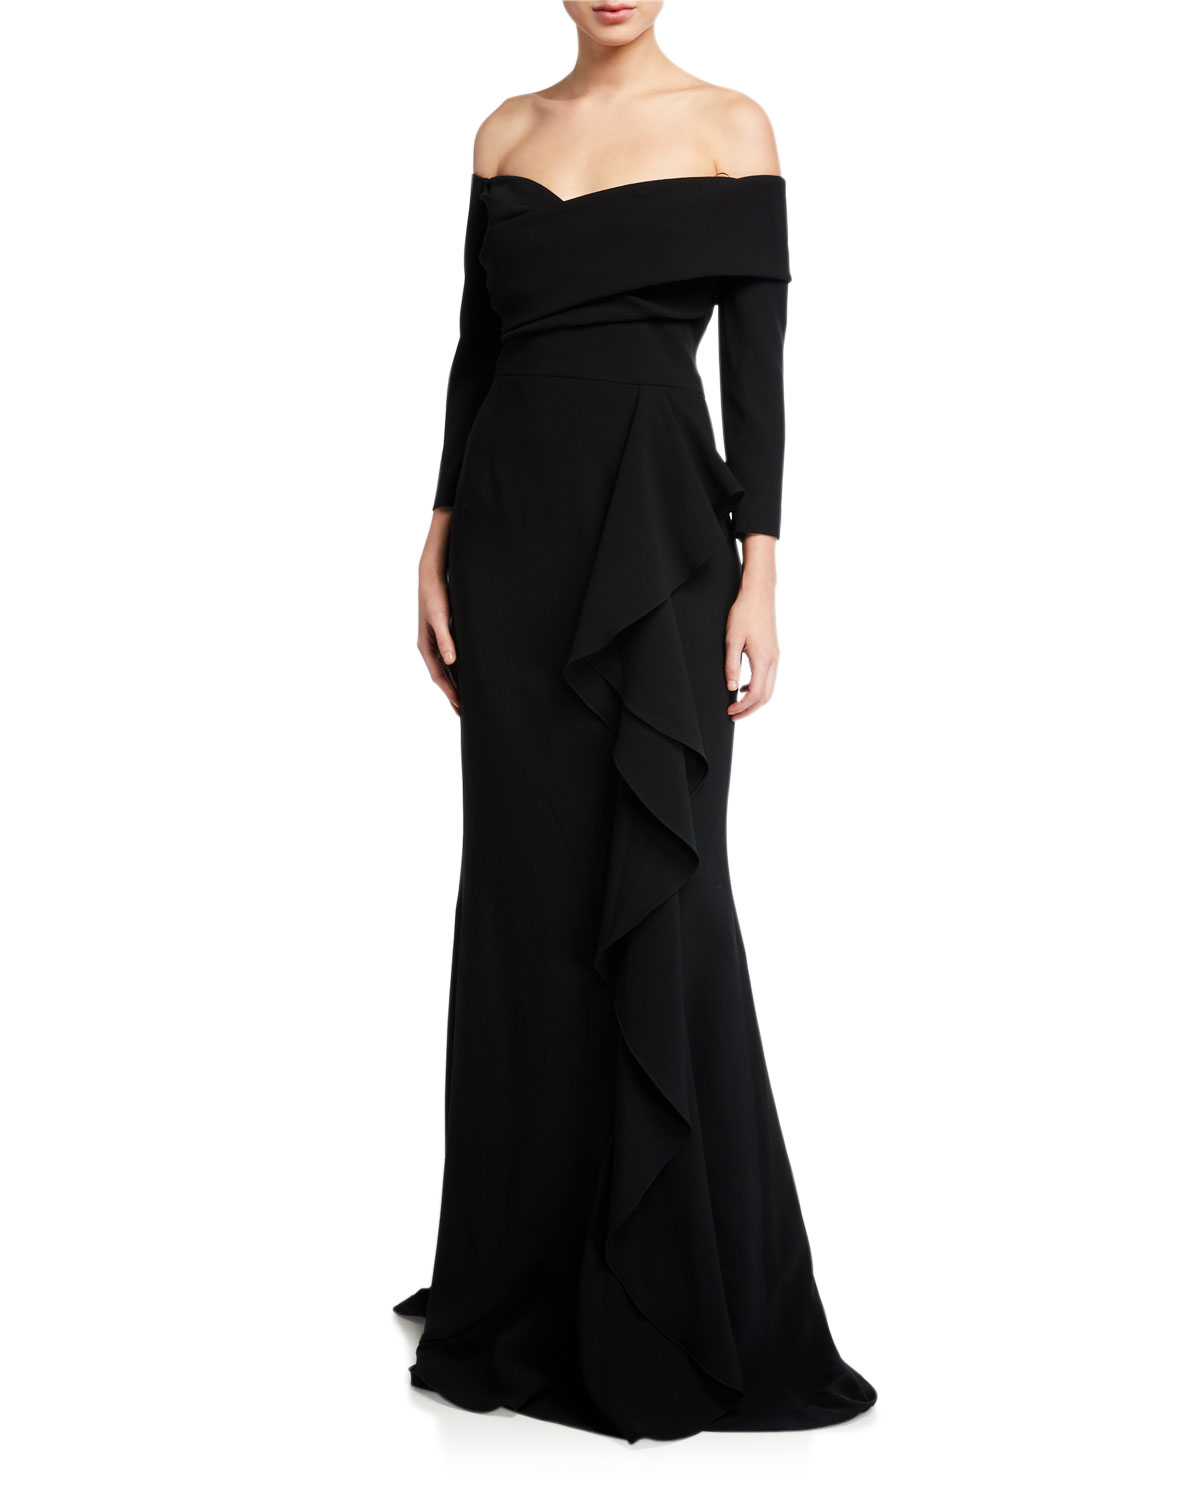 Rickie Freeman For Teri Jon Tops OFF-THE-SHOULDER 3/4-SLEEVE SIDE DRAPED CREPE GOWN